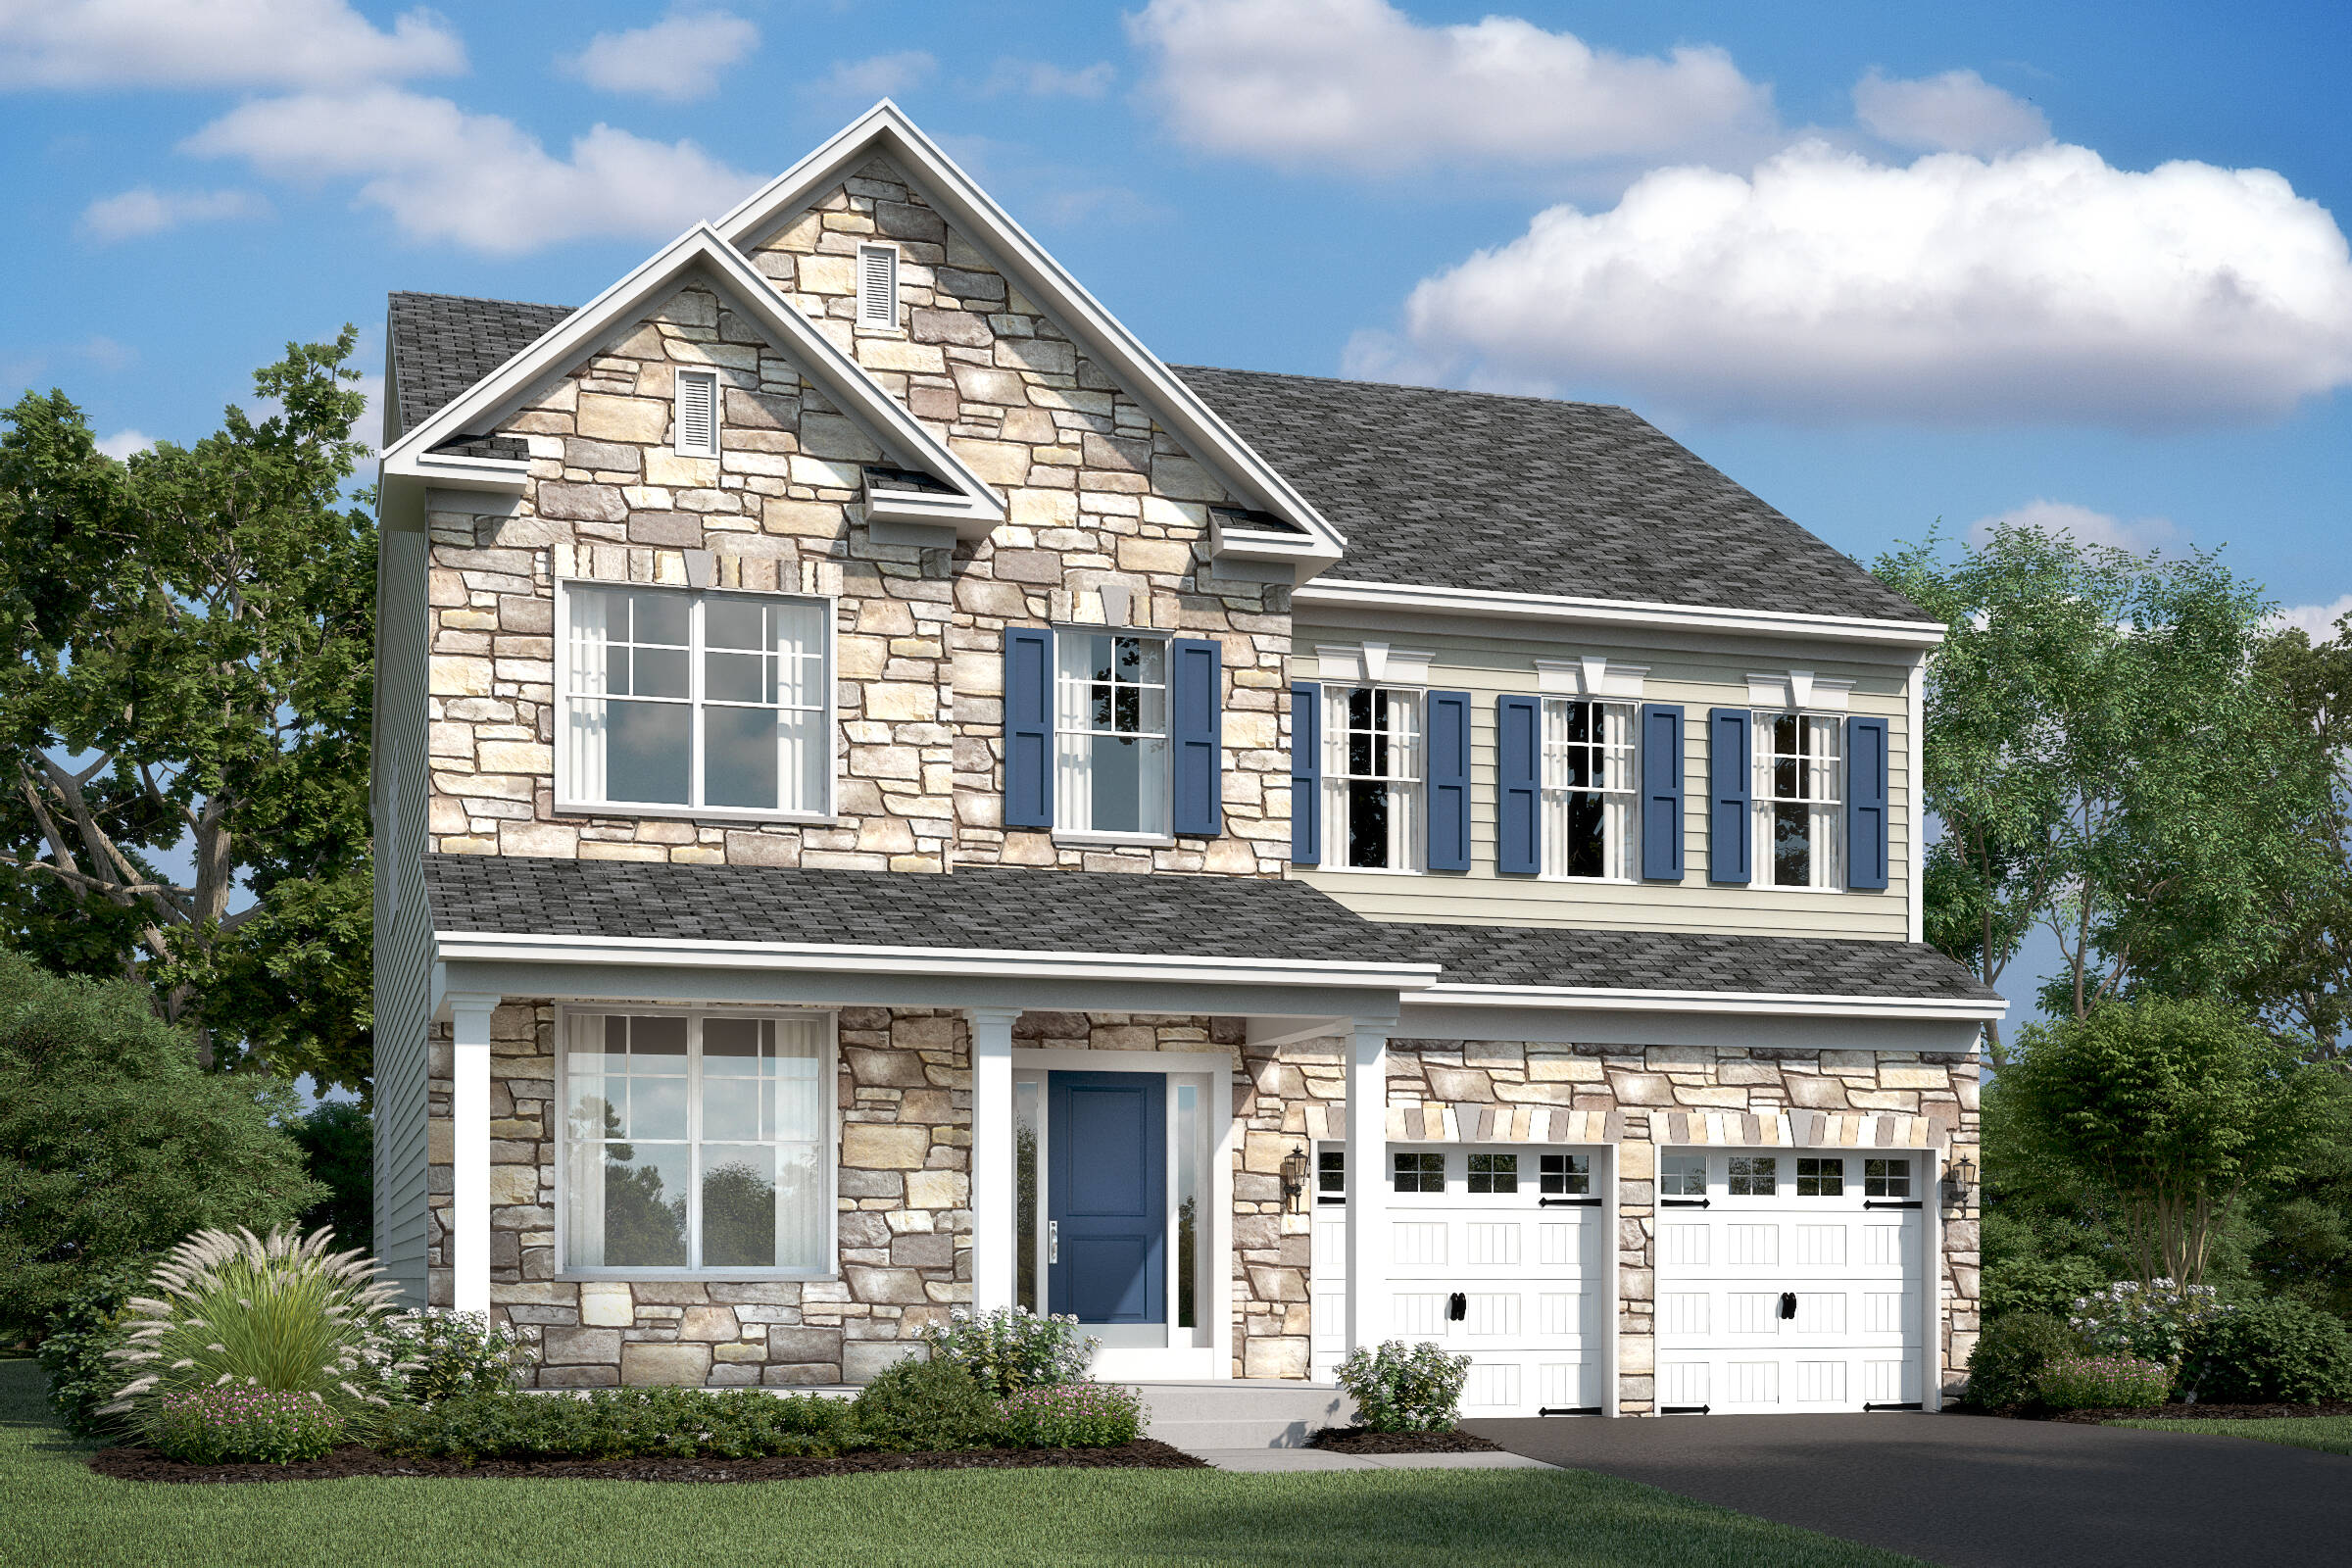 callahan-ii-ct-new-homes-at-eden-terrace-in-maryland